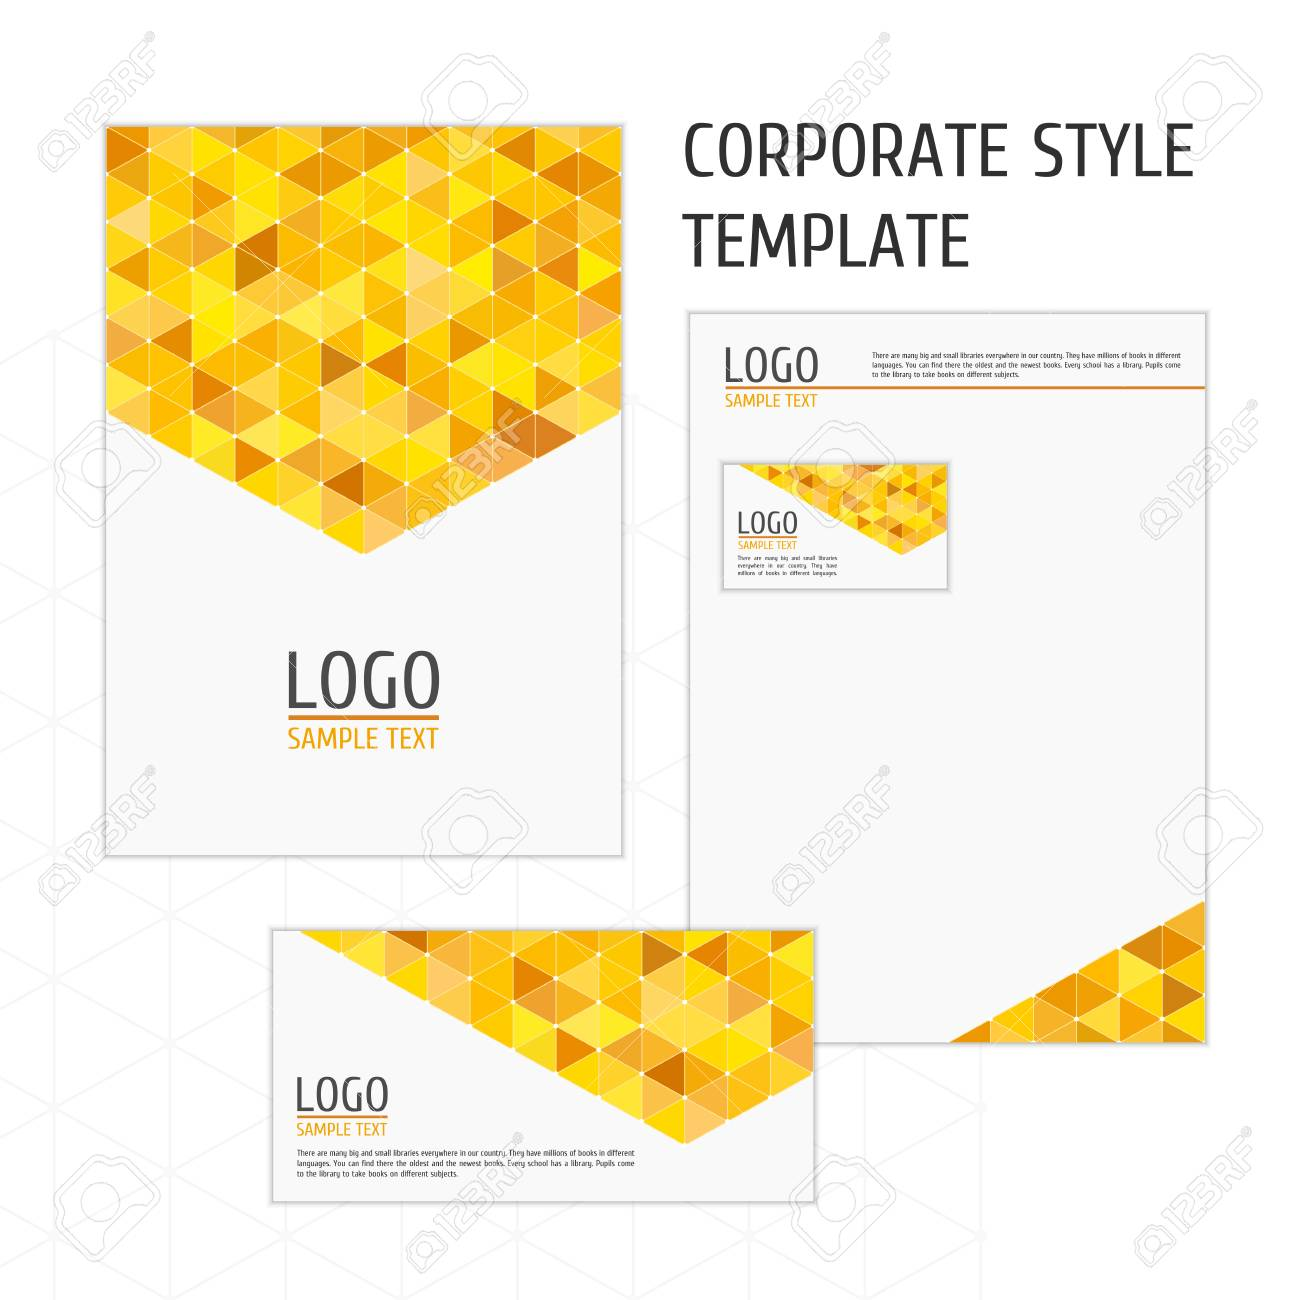 Corporate Identity Template With Digital Elements. Modern Design ...